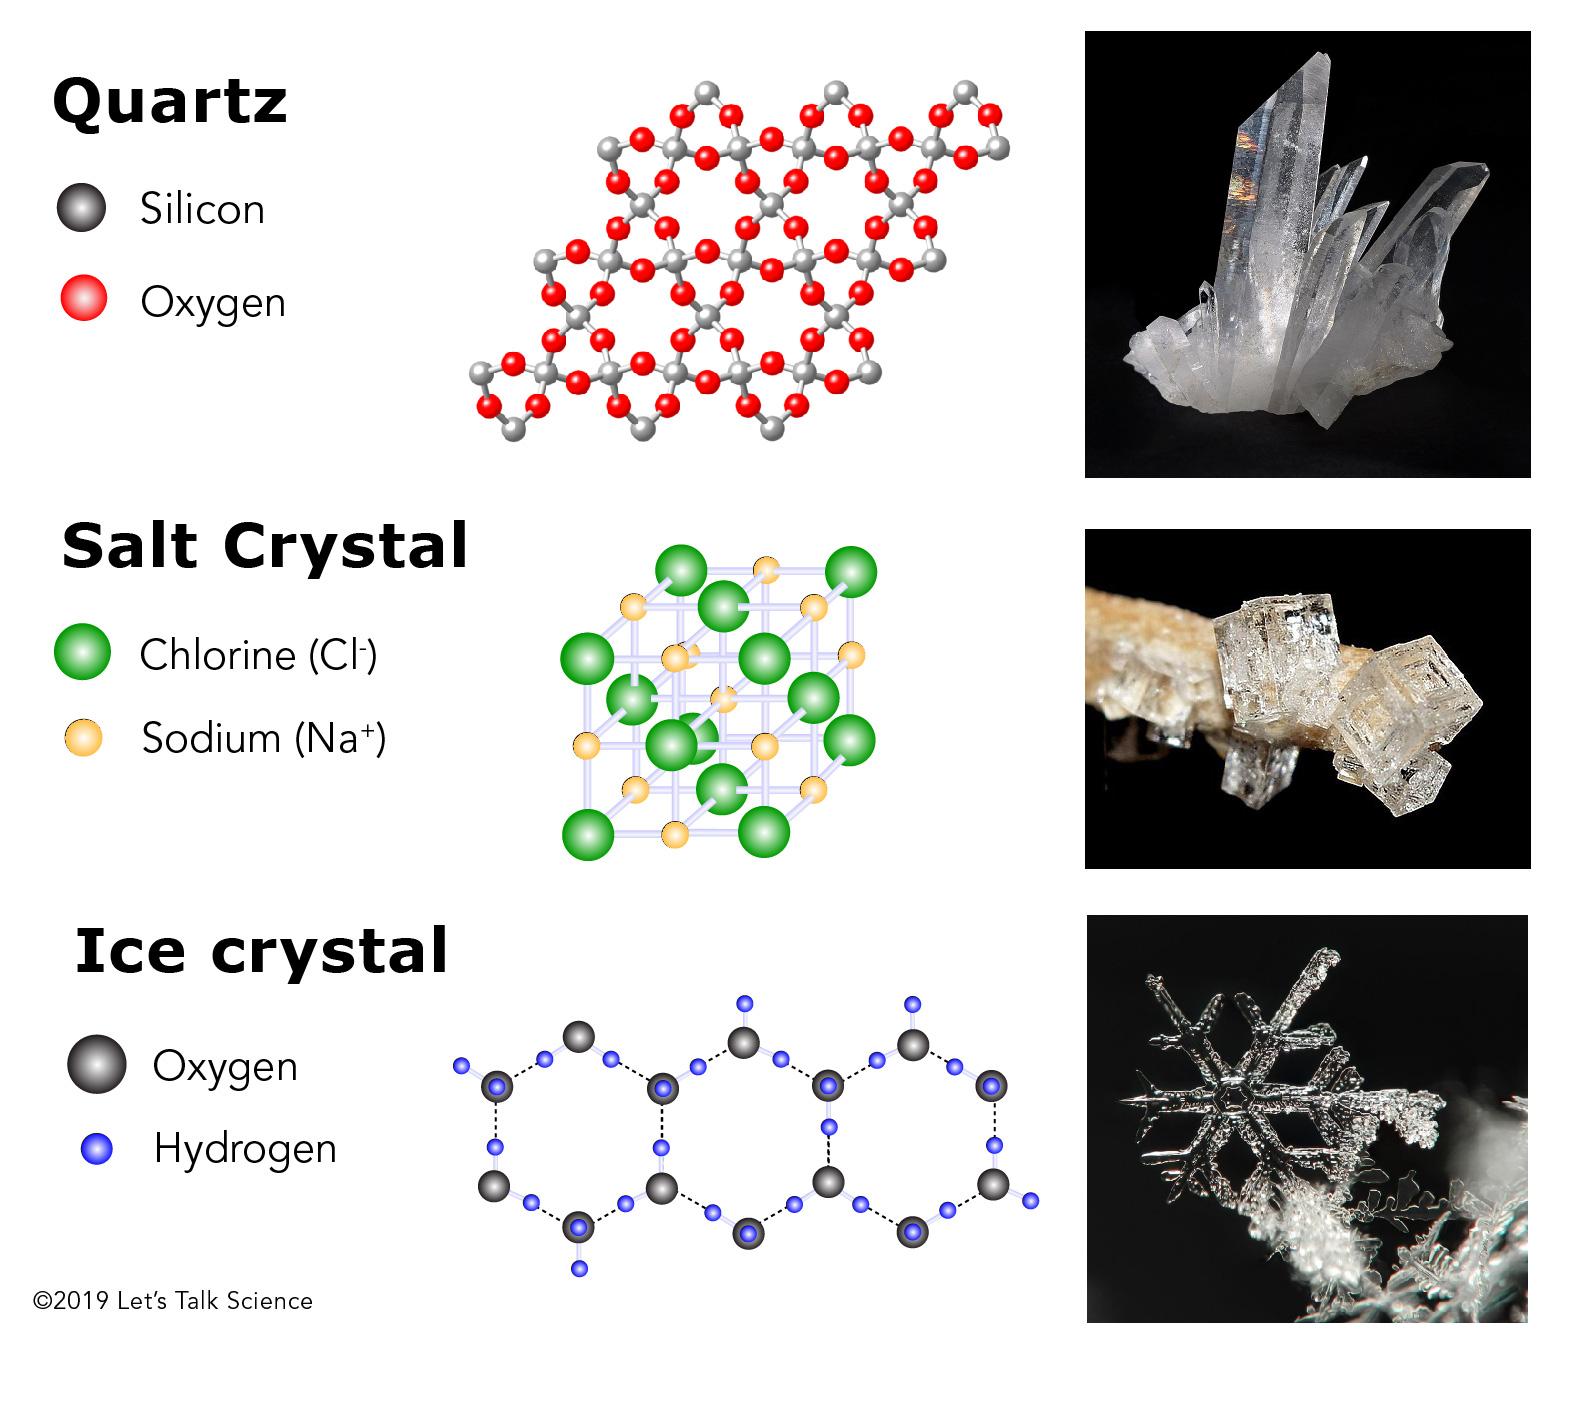 Molecular structures and photographs of quartz, table salt and ice crystals